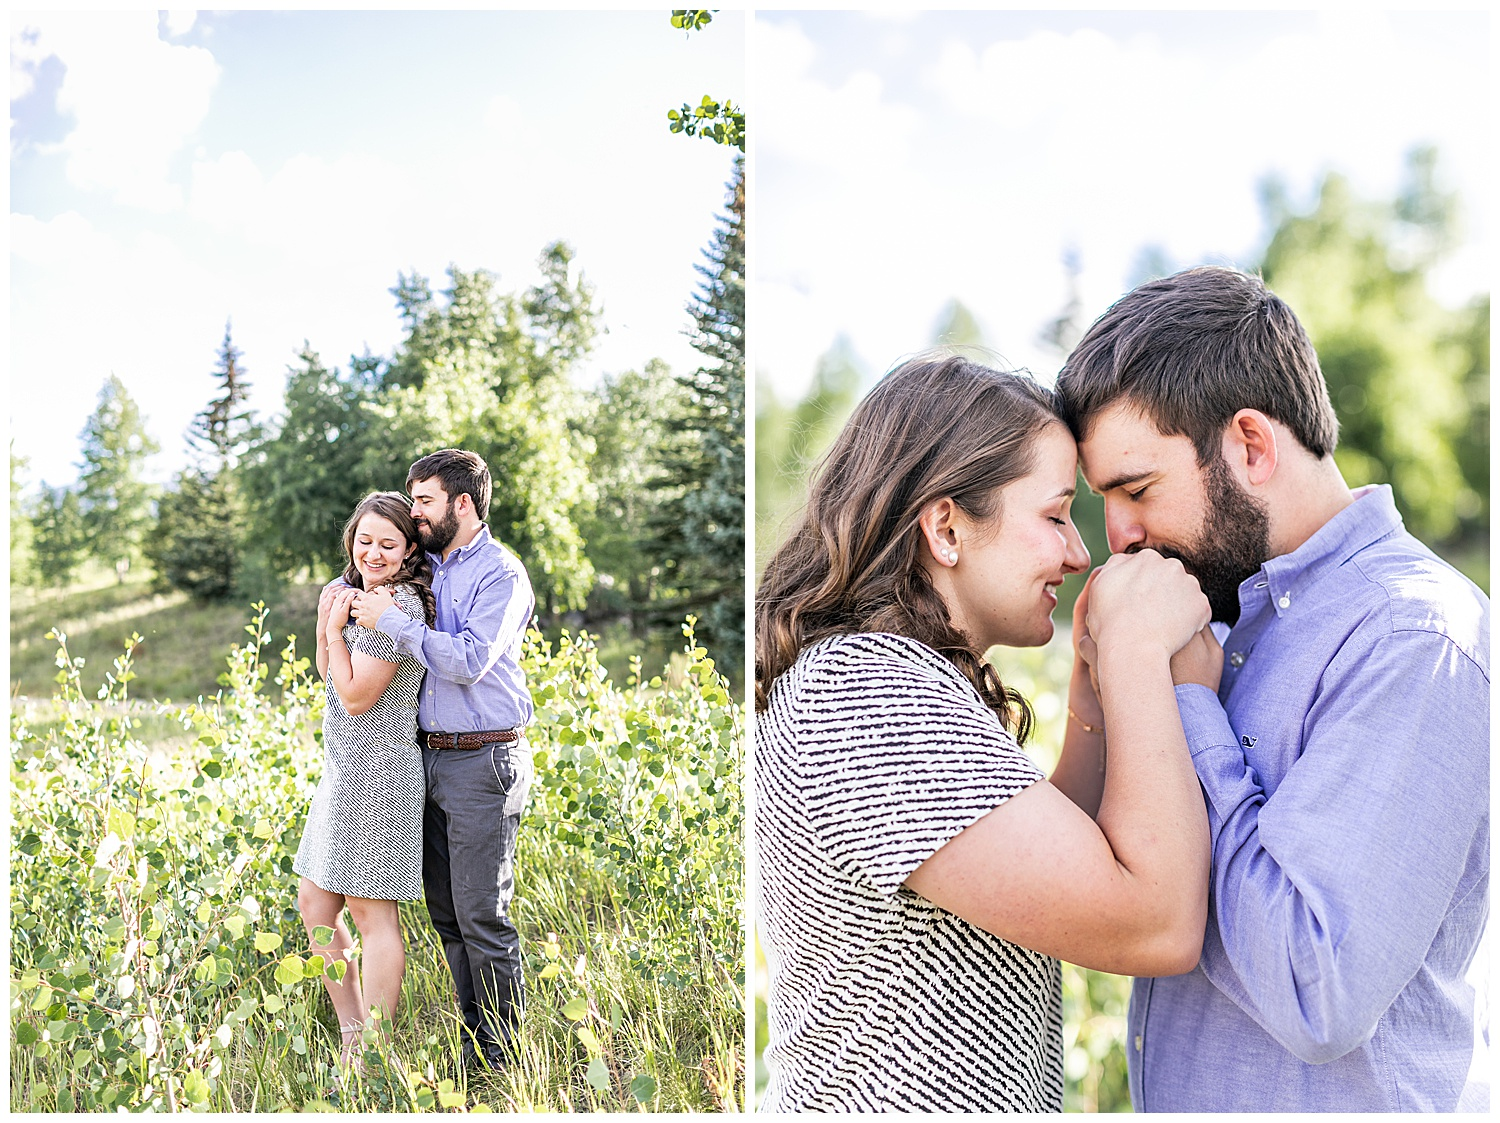 Molly + Ryan Breckenridge Destination Engagement Session Living Radiant Photography_0003.jpg